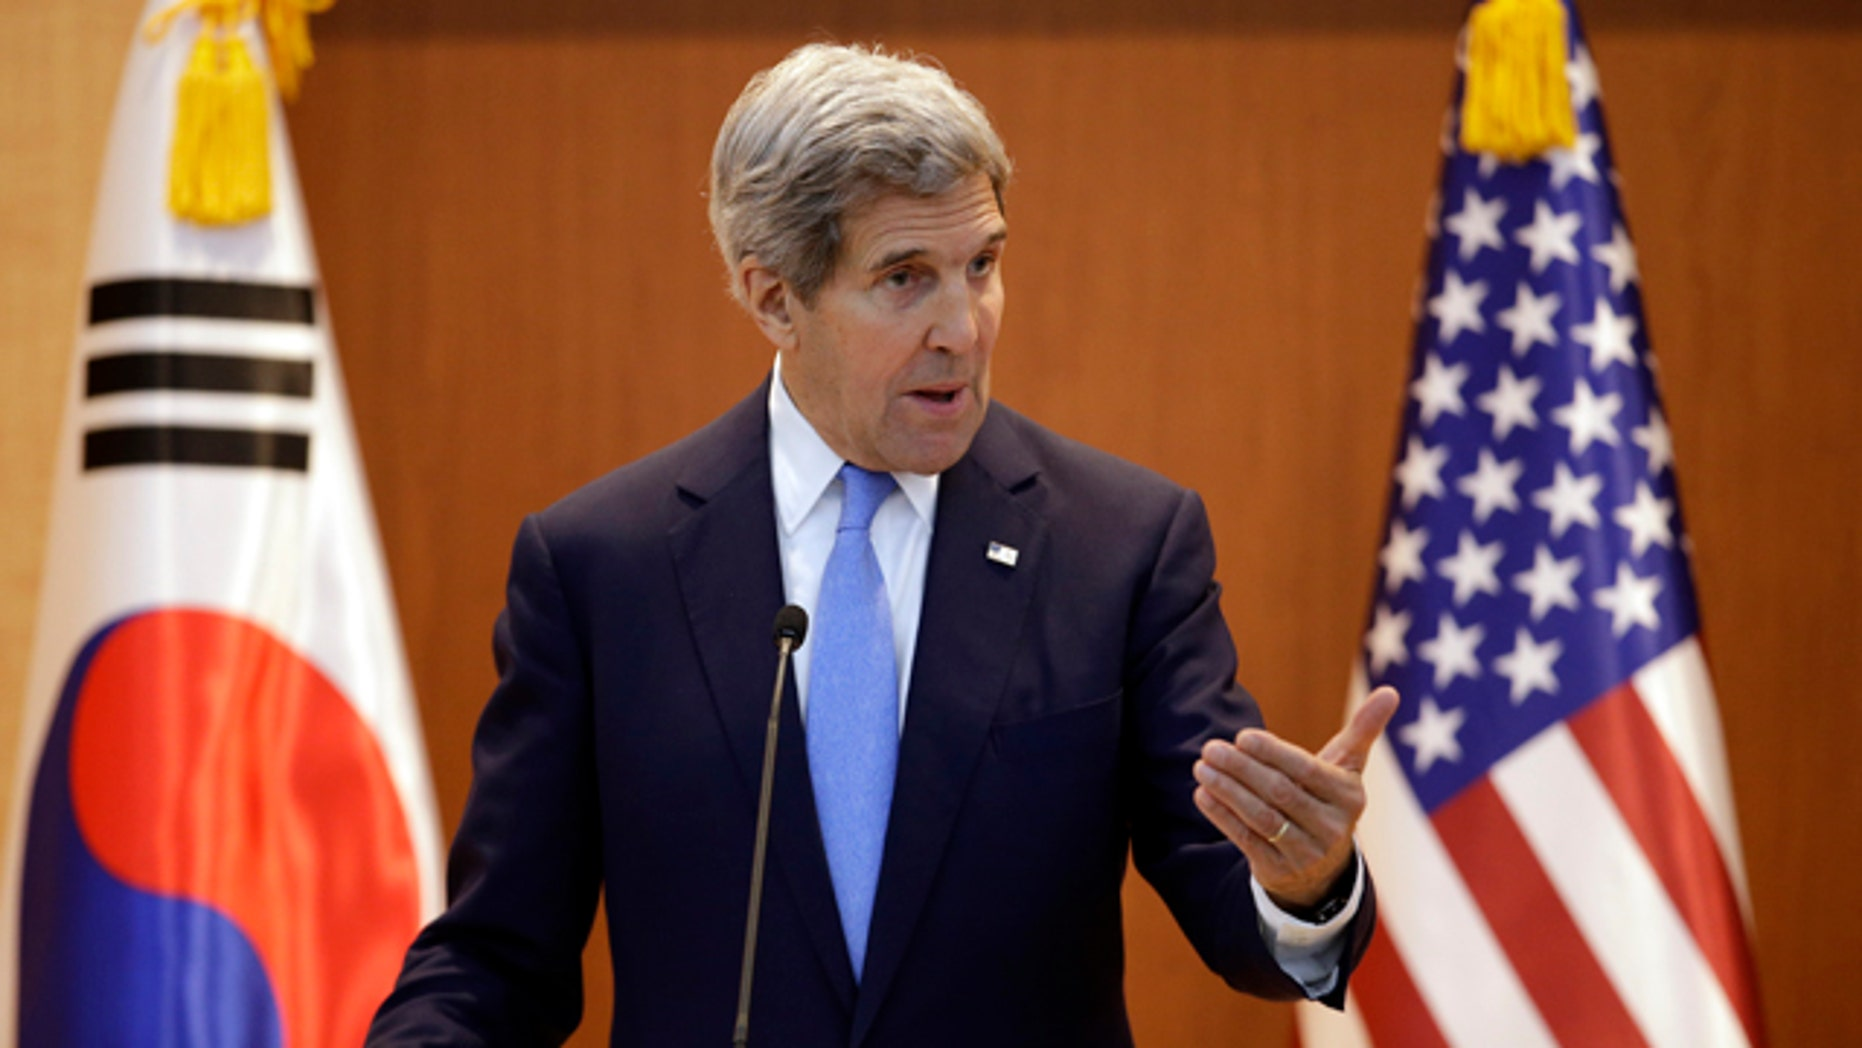 May 18, 2015: U.S. Secretary of State John Kerry answers a reporter's question during a joint news conference following meetings with South Korean Foreign Minister Yun Byung-se at the Foreign Ministry in Seoul. (AP Photo/Lee Jin-man, Pool)